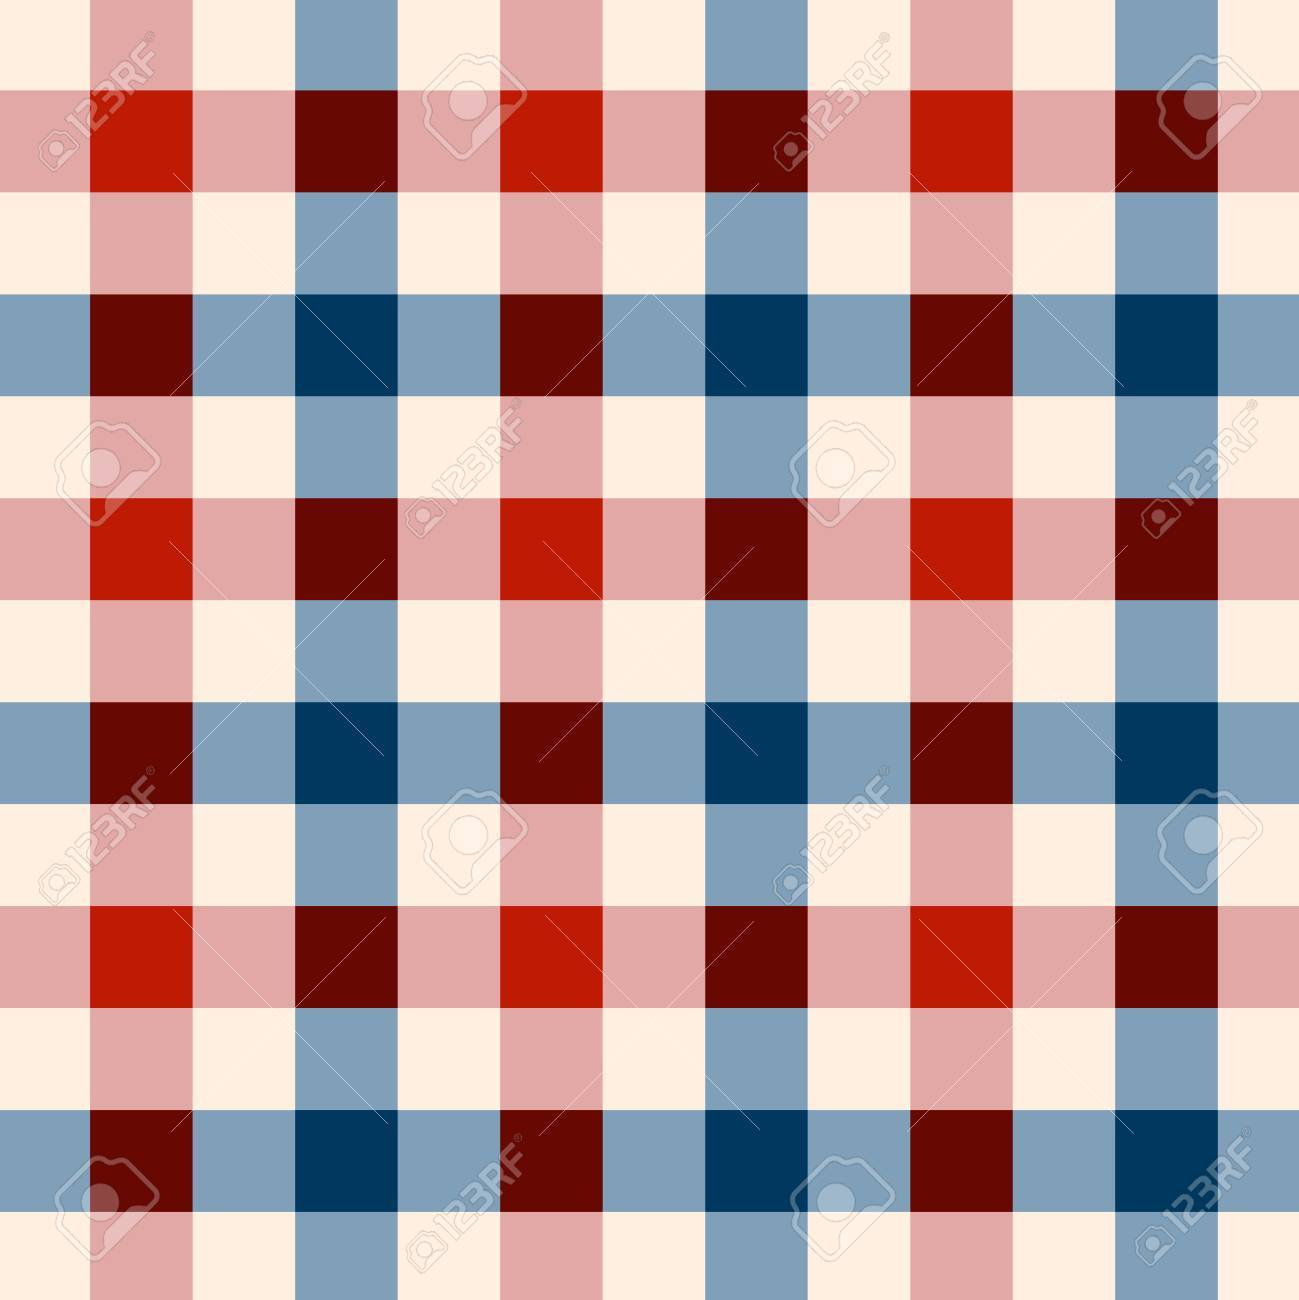 patriotic background patterns for independence day in red white